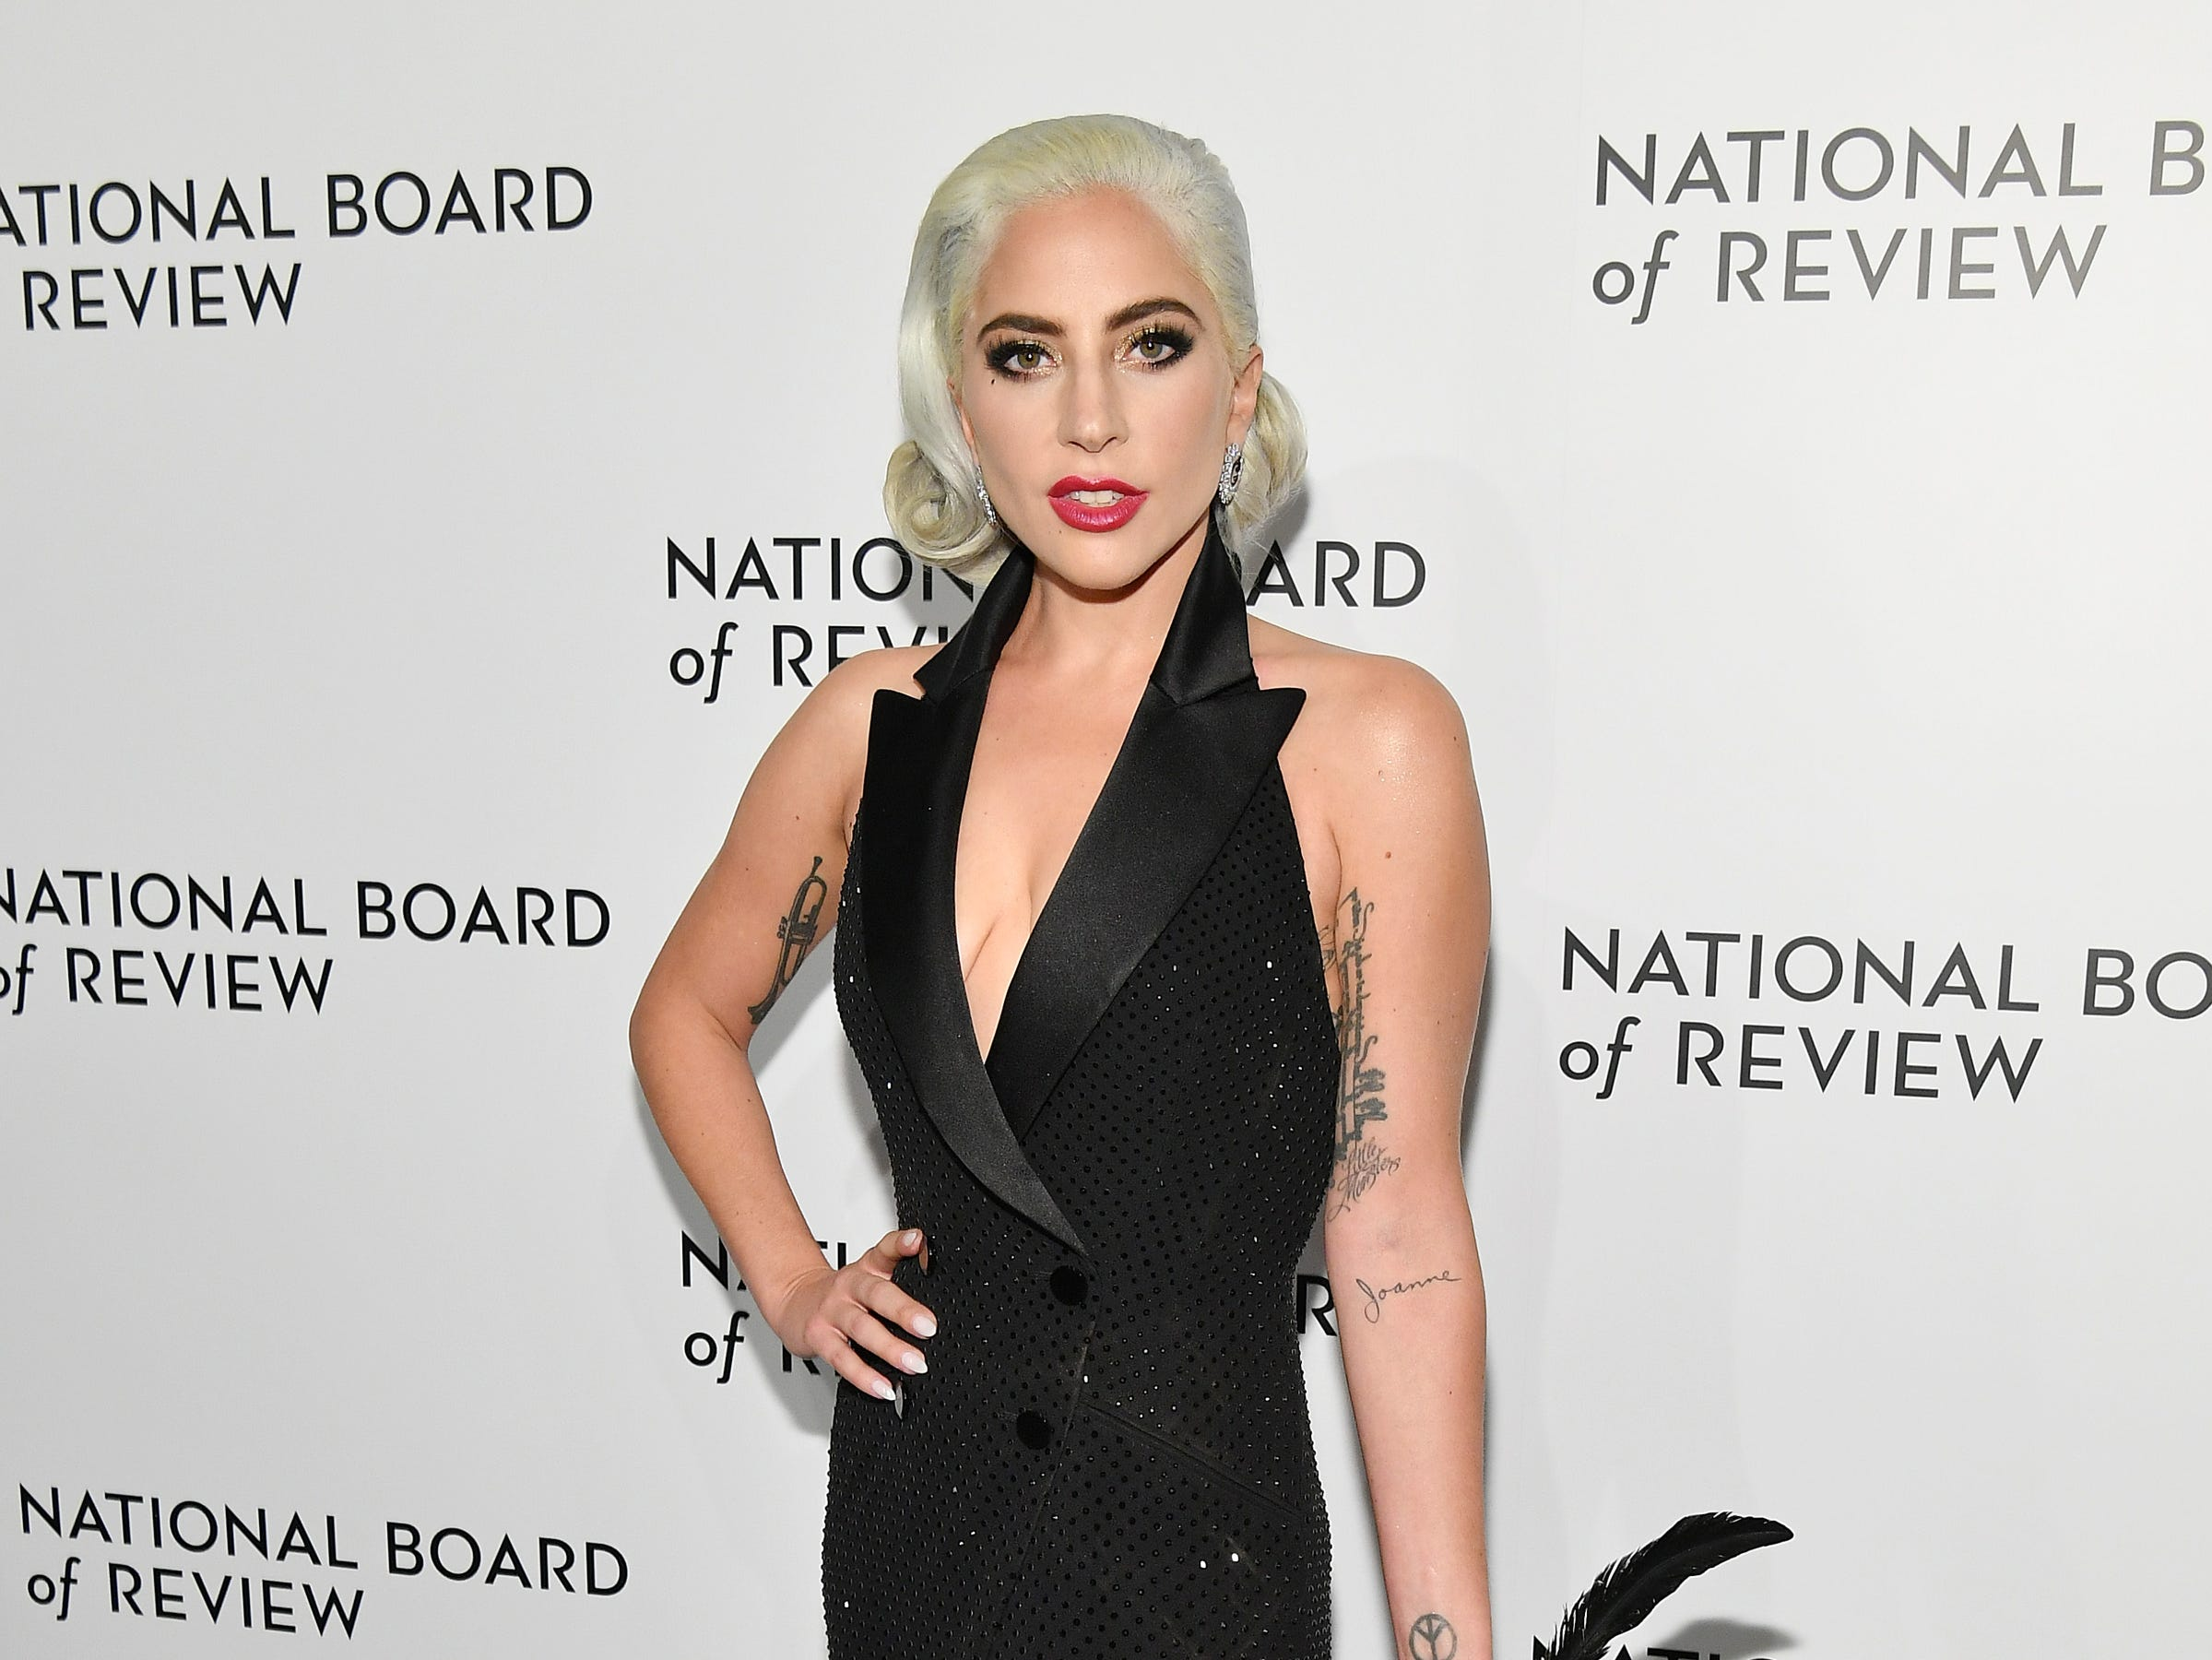 NEW YORK, NY - JANUARY 08: Lady Gaga attends The National Board of Review Annual Awards Gala at Cipriani 42nd Street on January 8, 2019 in New York City.  (Photo by Dia Dipasupil/Getty Images for National Board of Review) ORG XMIT: 775259363 ORIG FILE ID: 1079453756